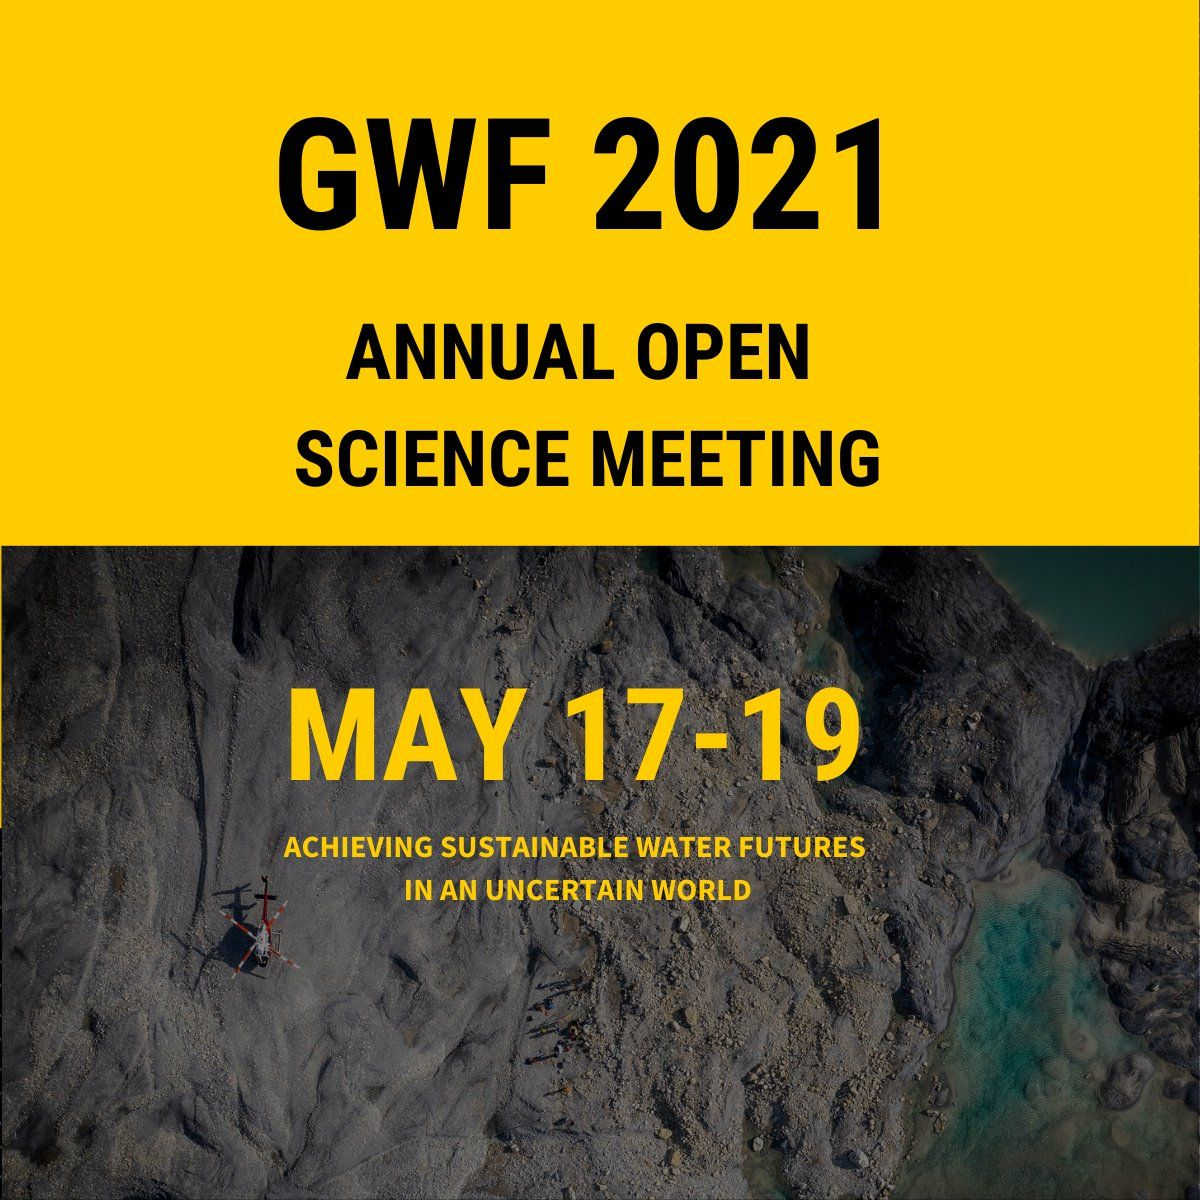 Logo for event which reads: GWF 2021 Annual Science Meeting May 17-19